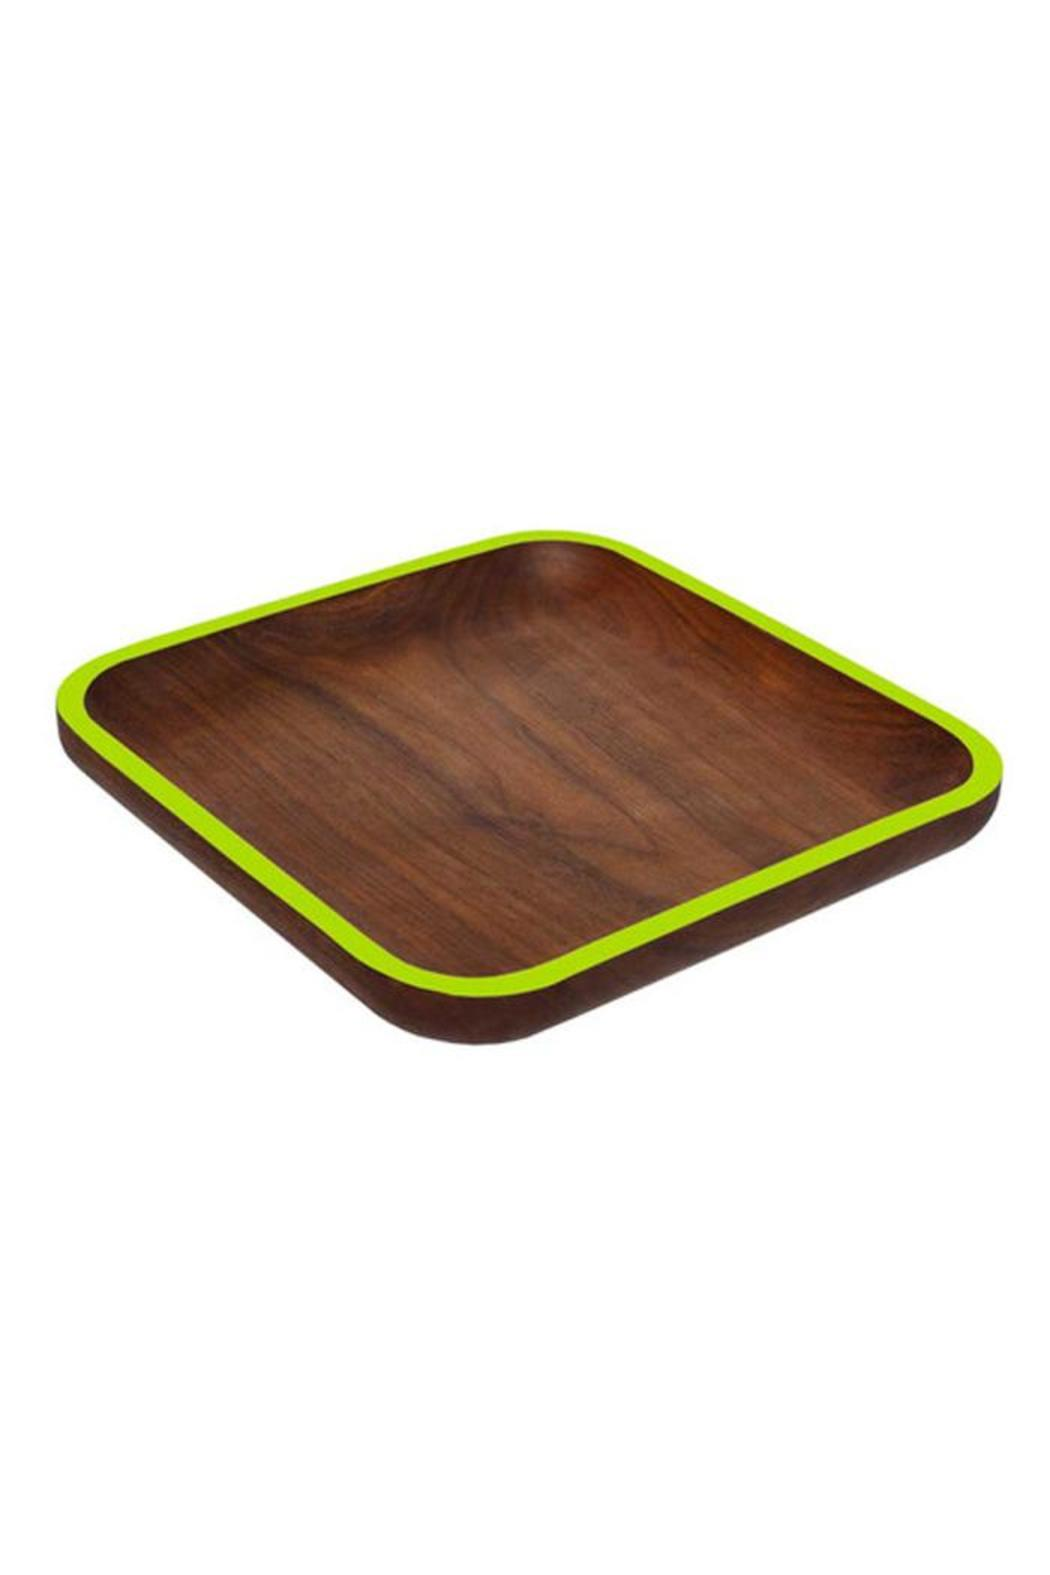 David Rasmussen Furniture Walnut Cafe Plate - Main Image